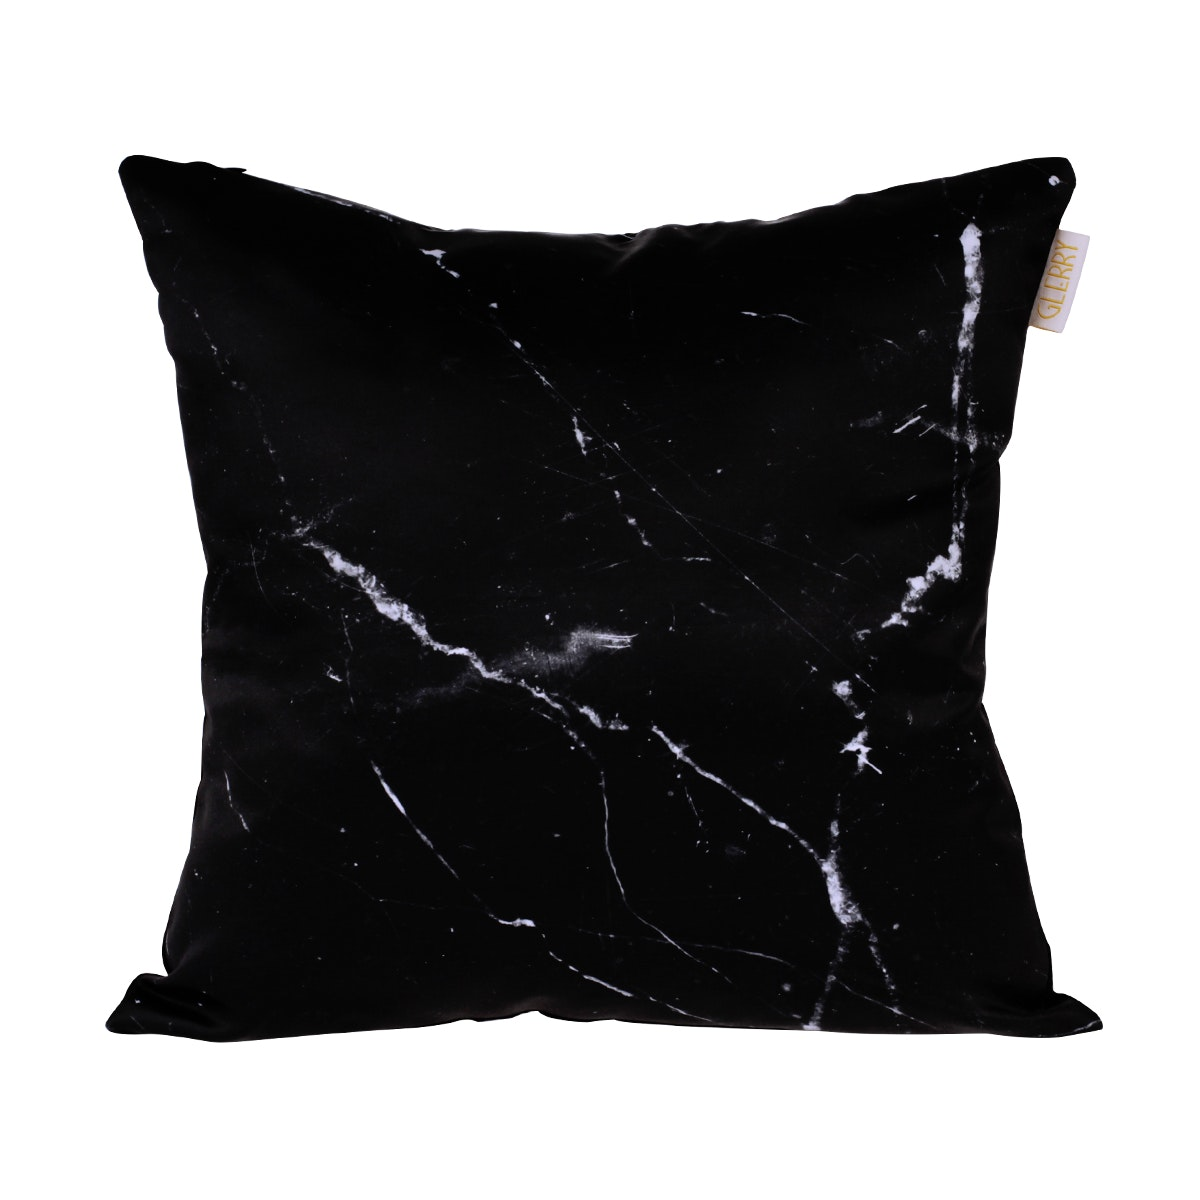 Glerry Home Decor Black Zircon Cushion 40x40cm